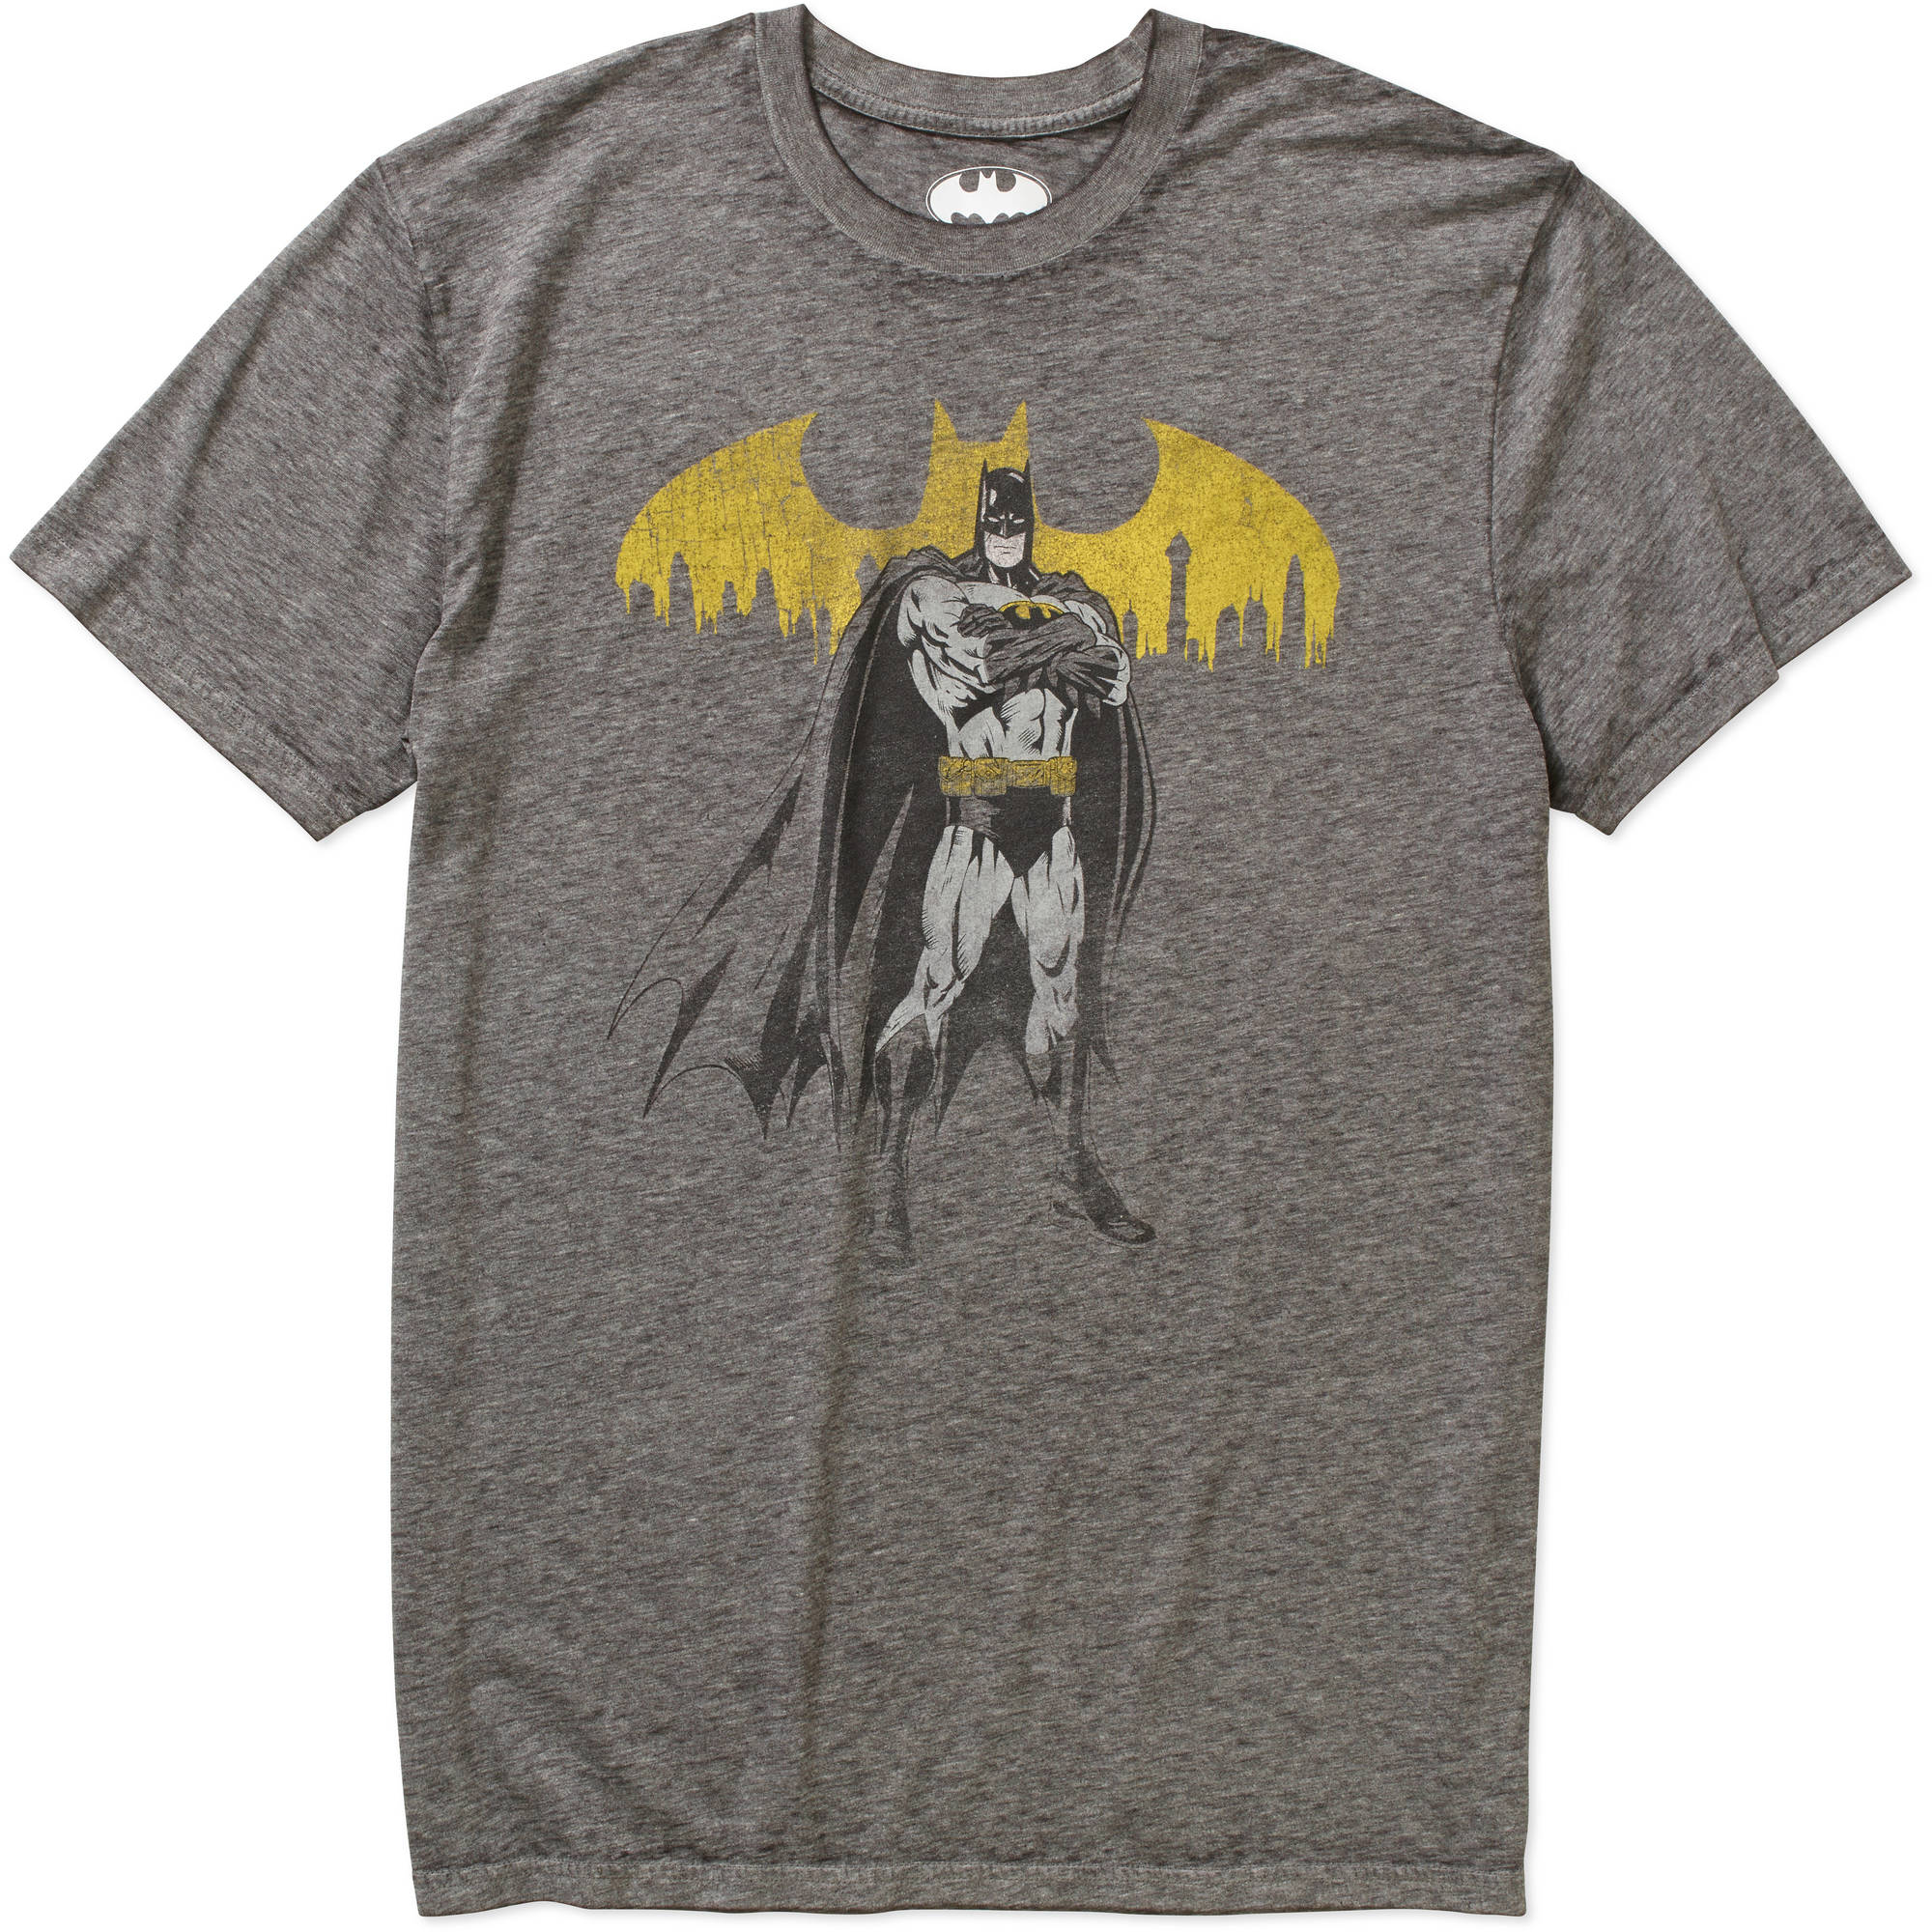 Batman Big Men's burnout graphic tee, 2xl